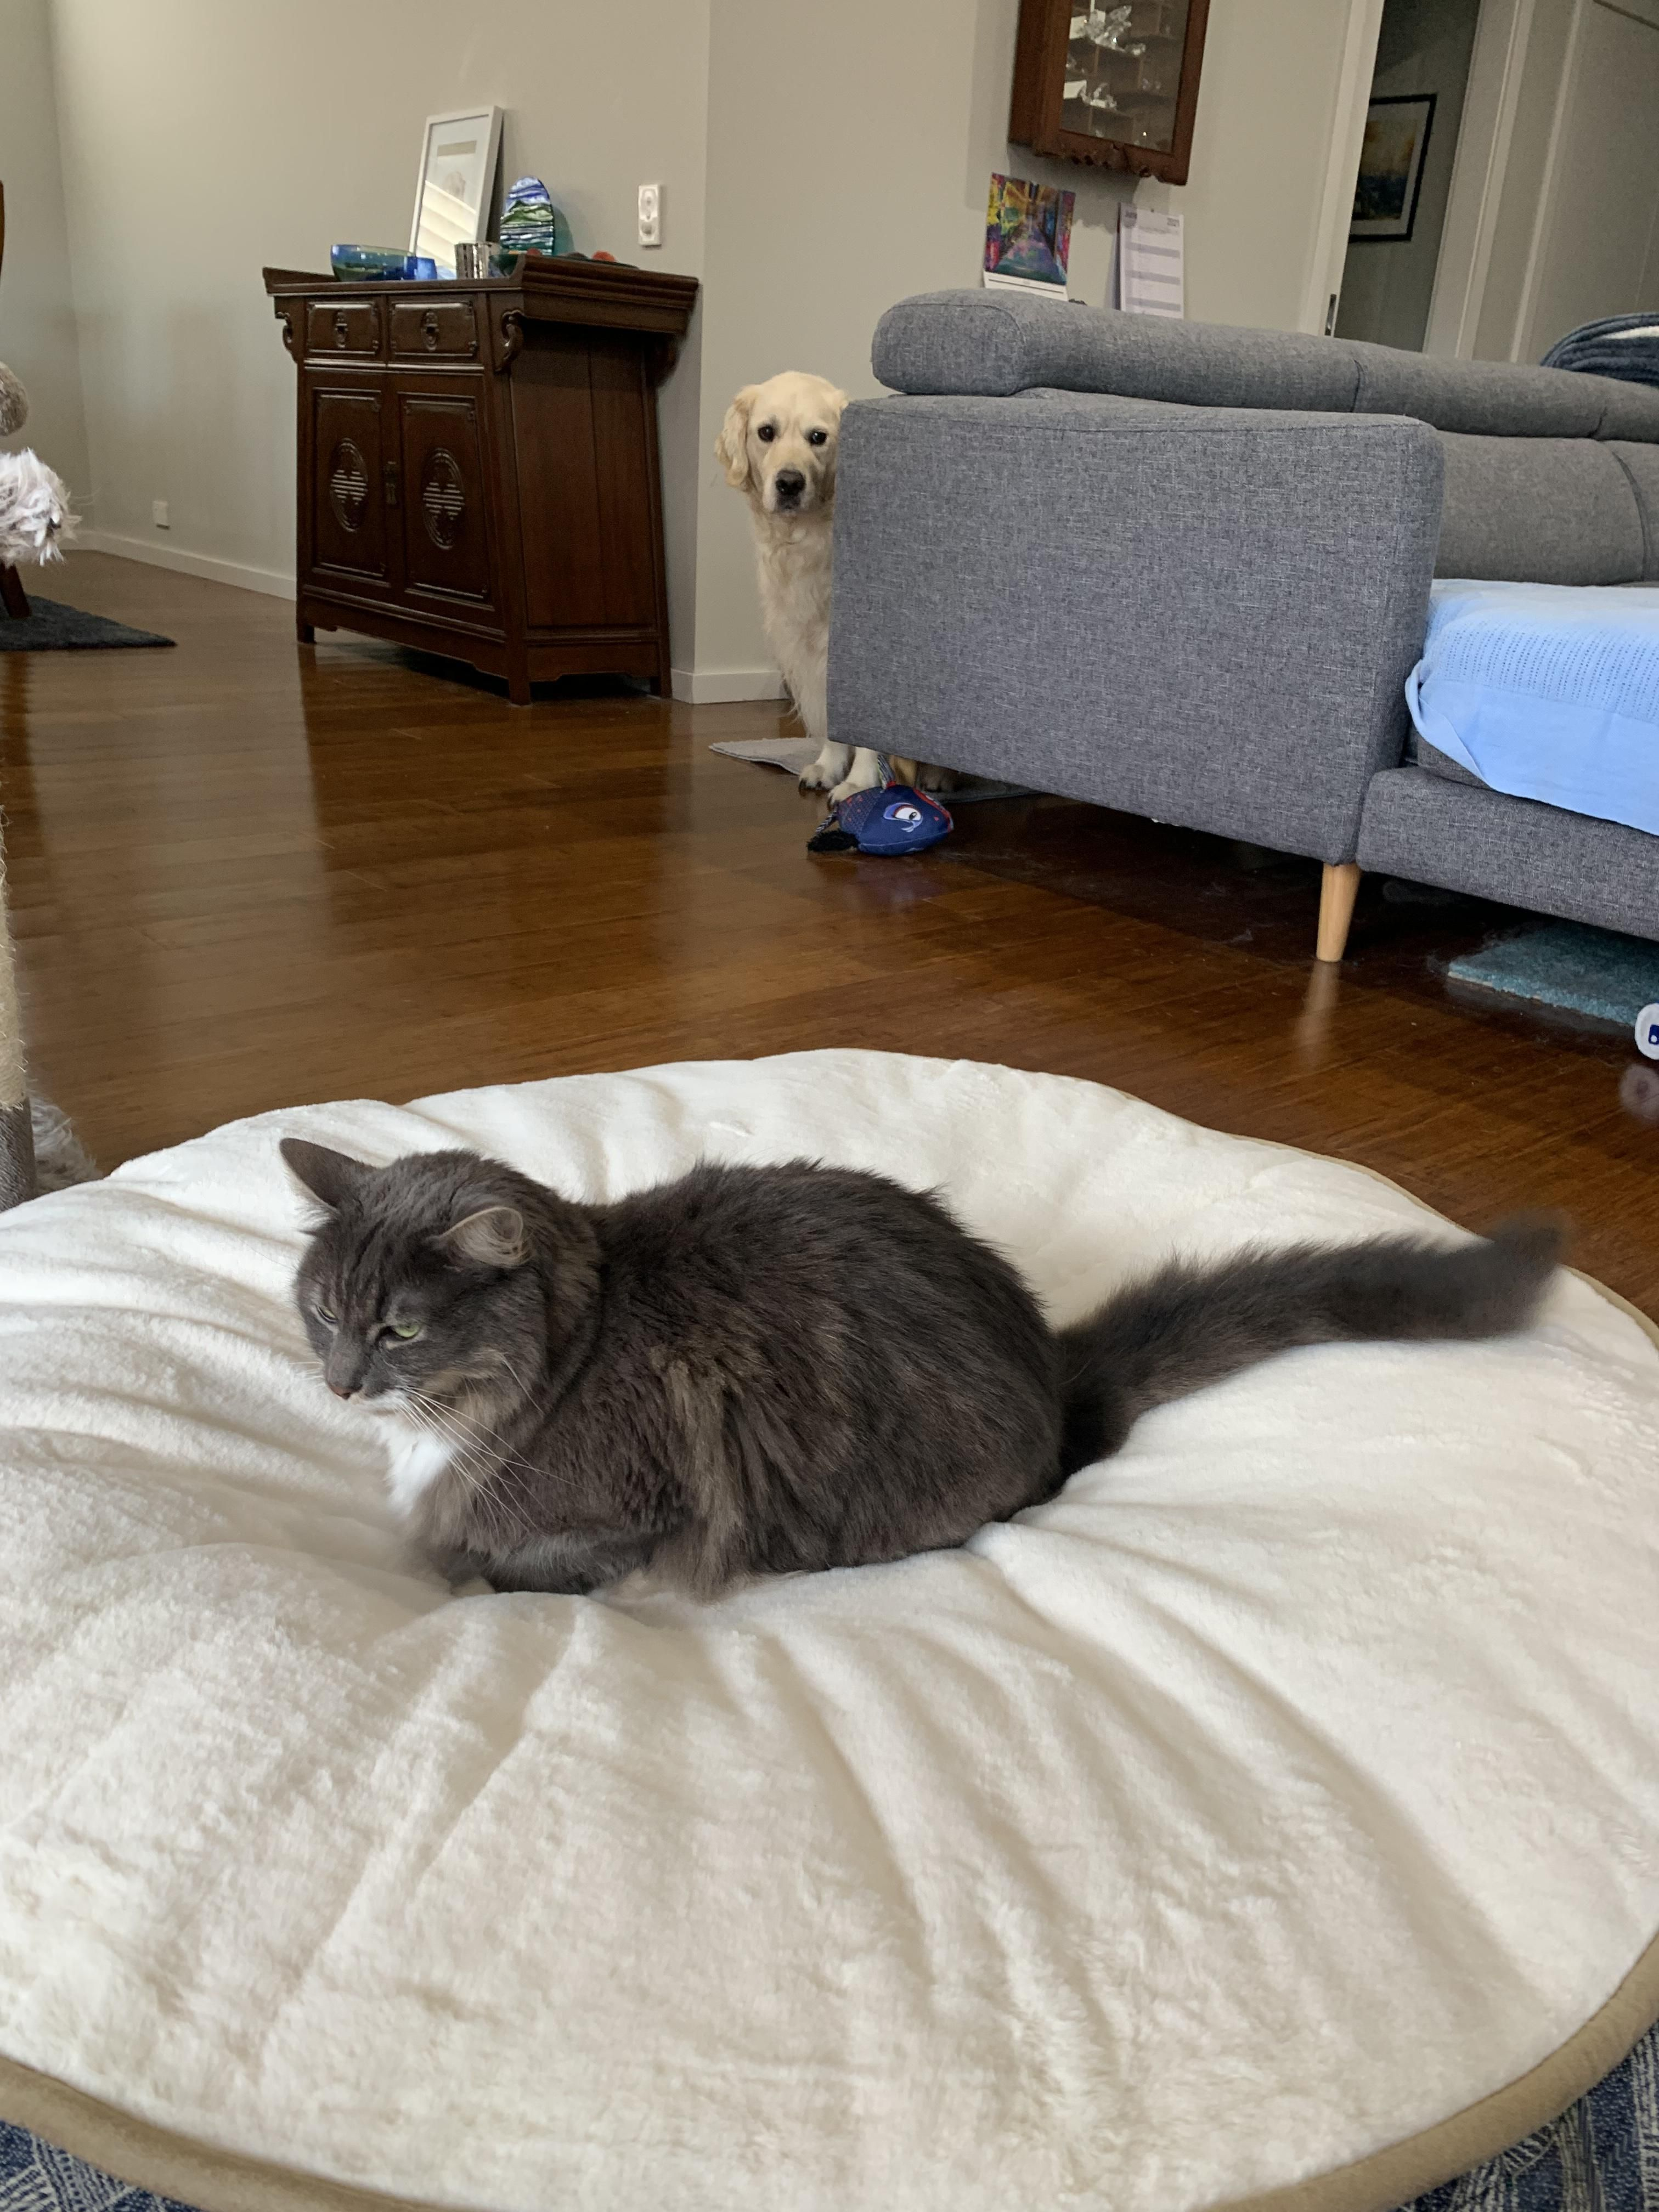 We picked up the new bed for the dog today.